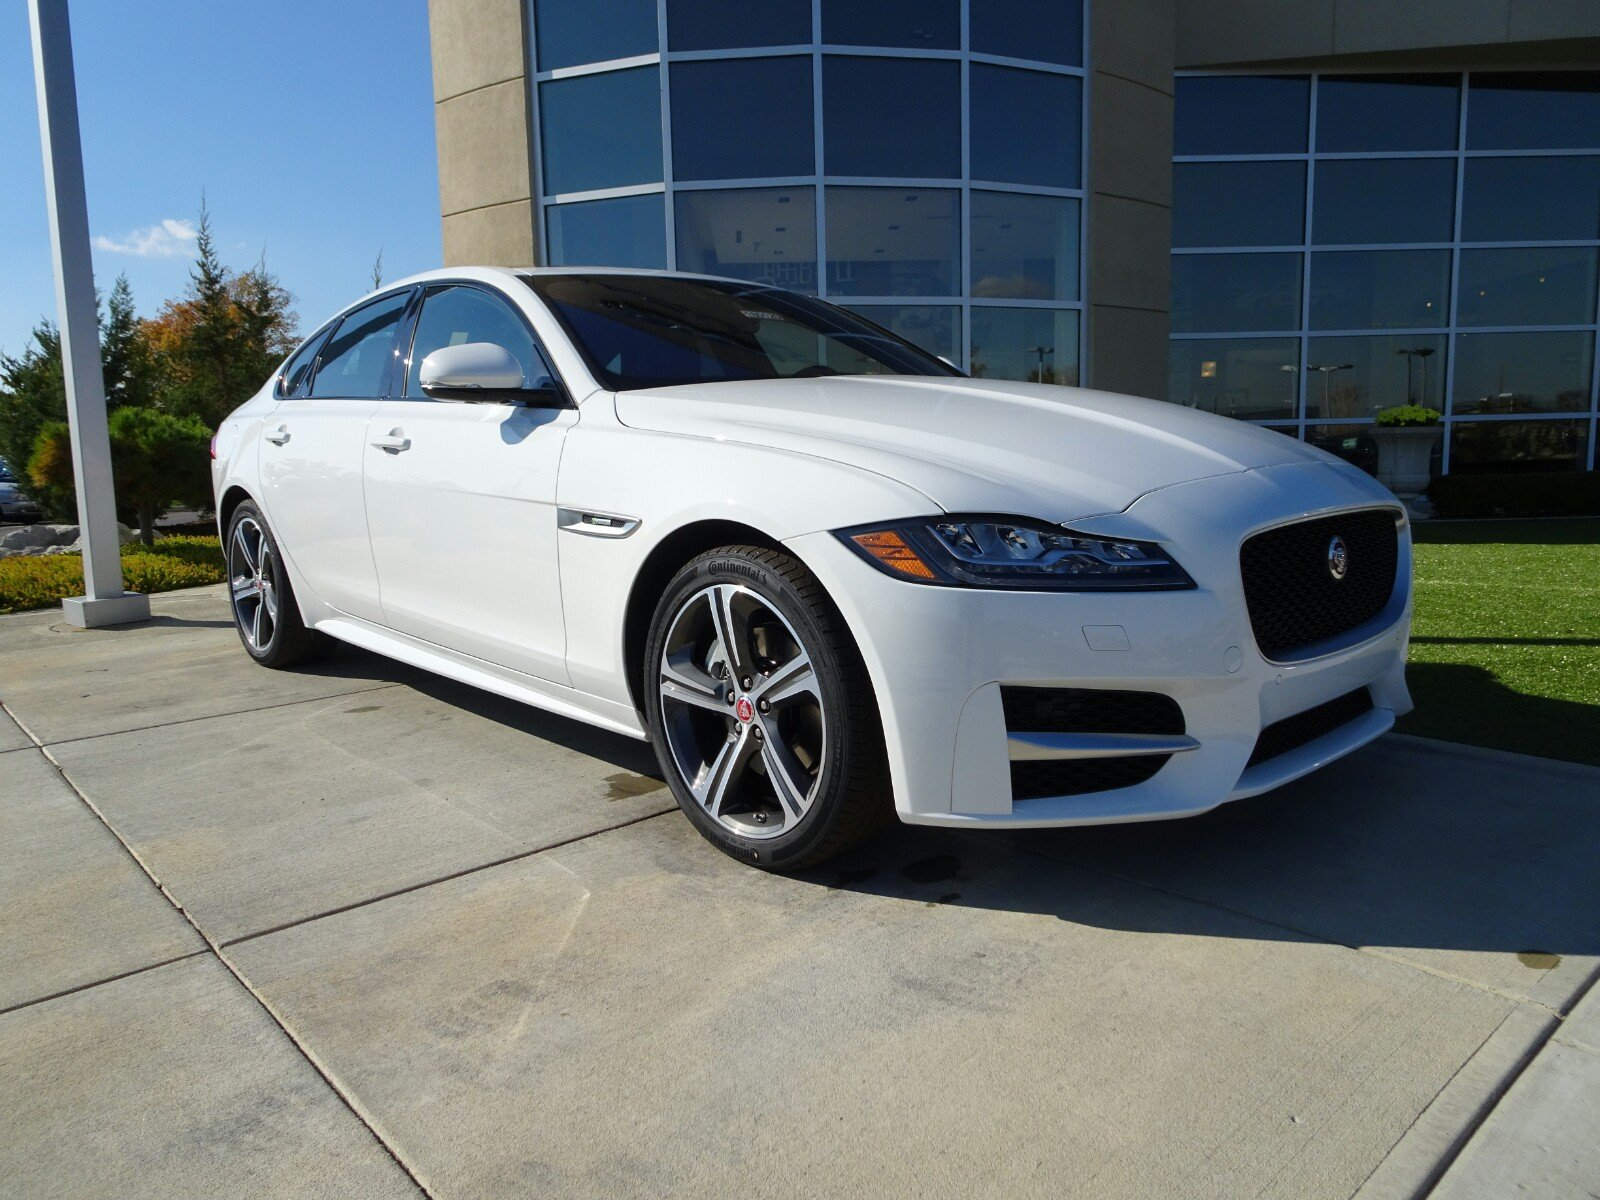 new 2018 jaguar xf 25t r sport 4 door sedan in cincinnati 180120 jaguar cincinnati. Black Bedroom Furniture Sets. Home Design Ideas